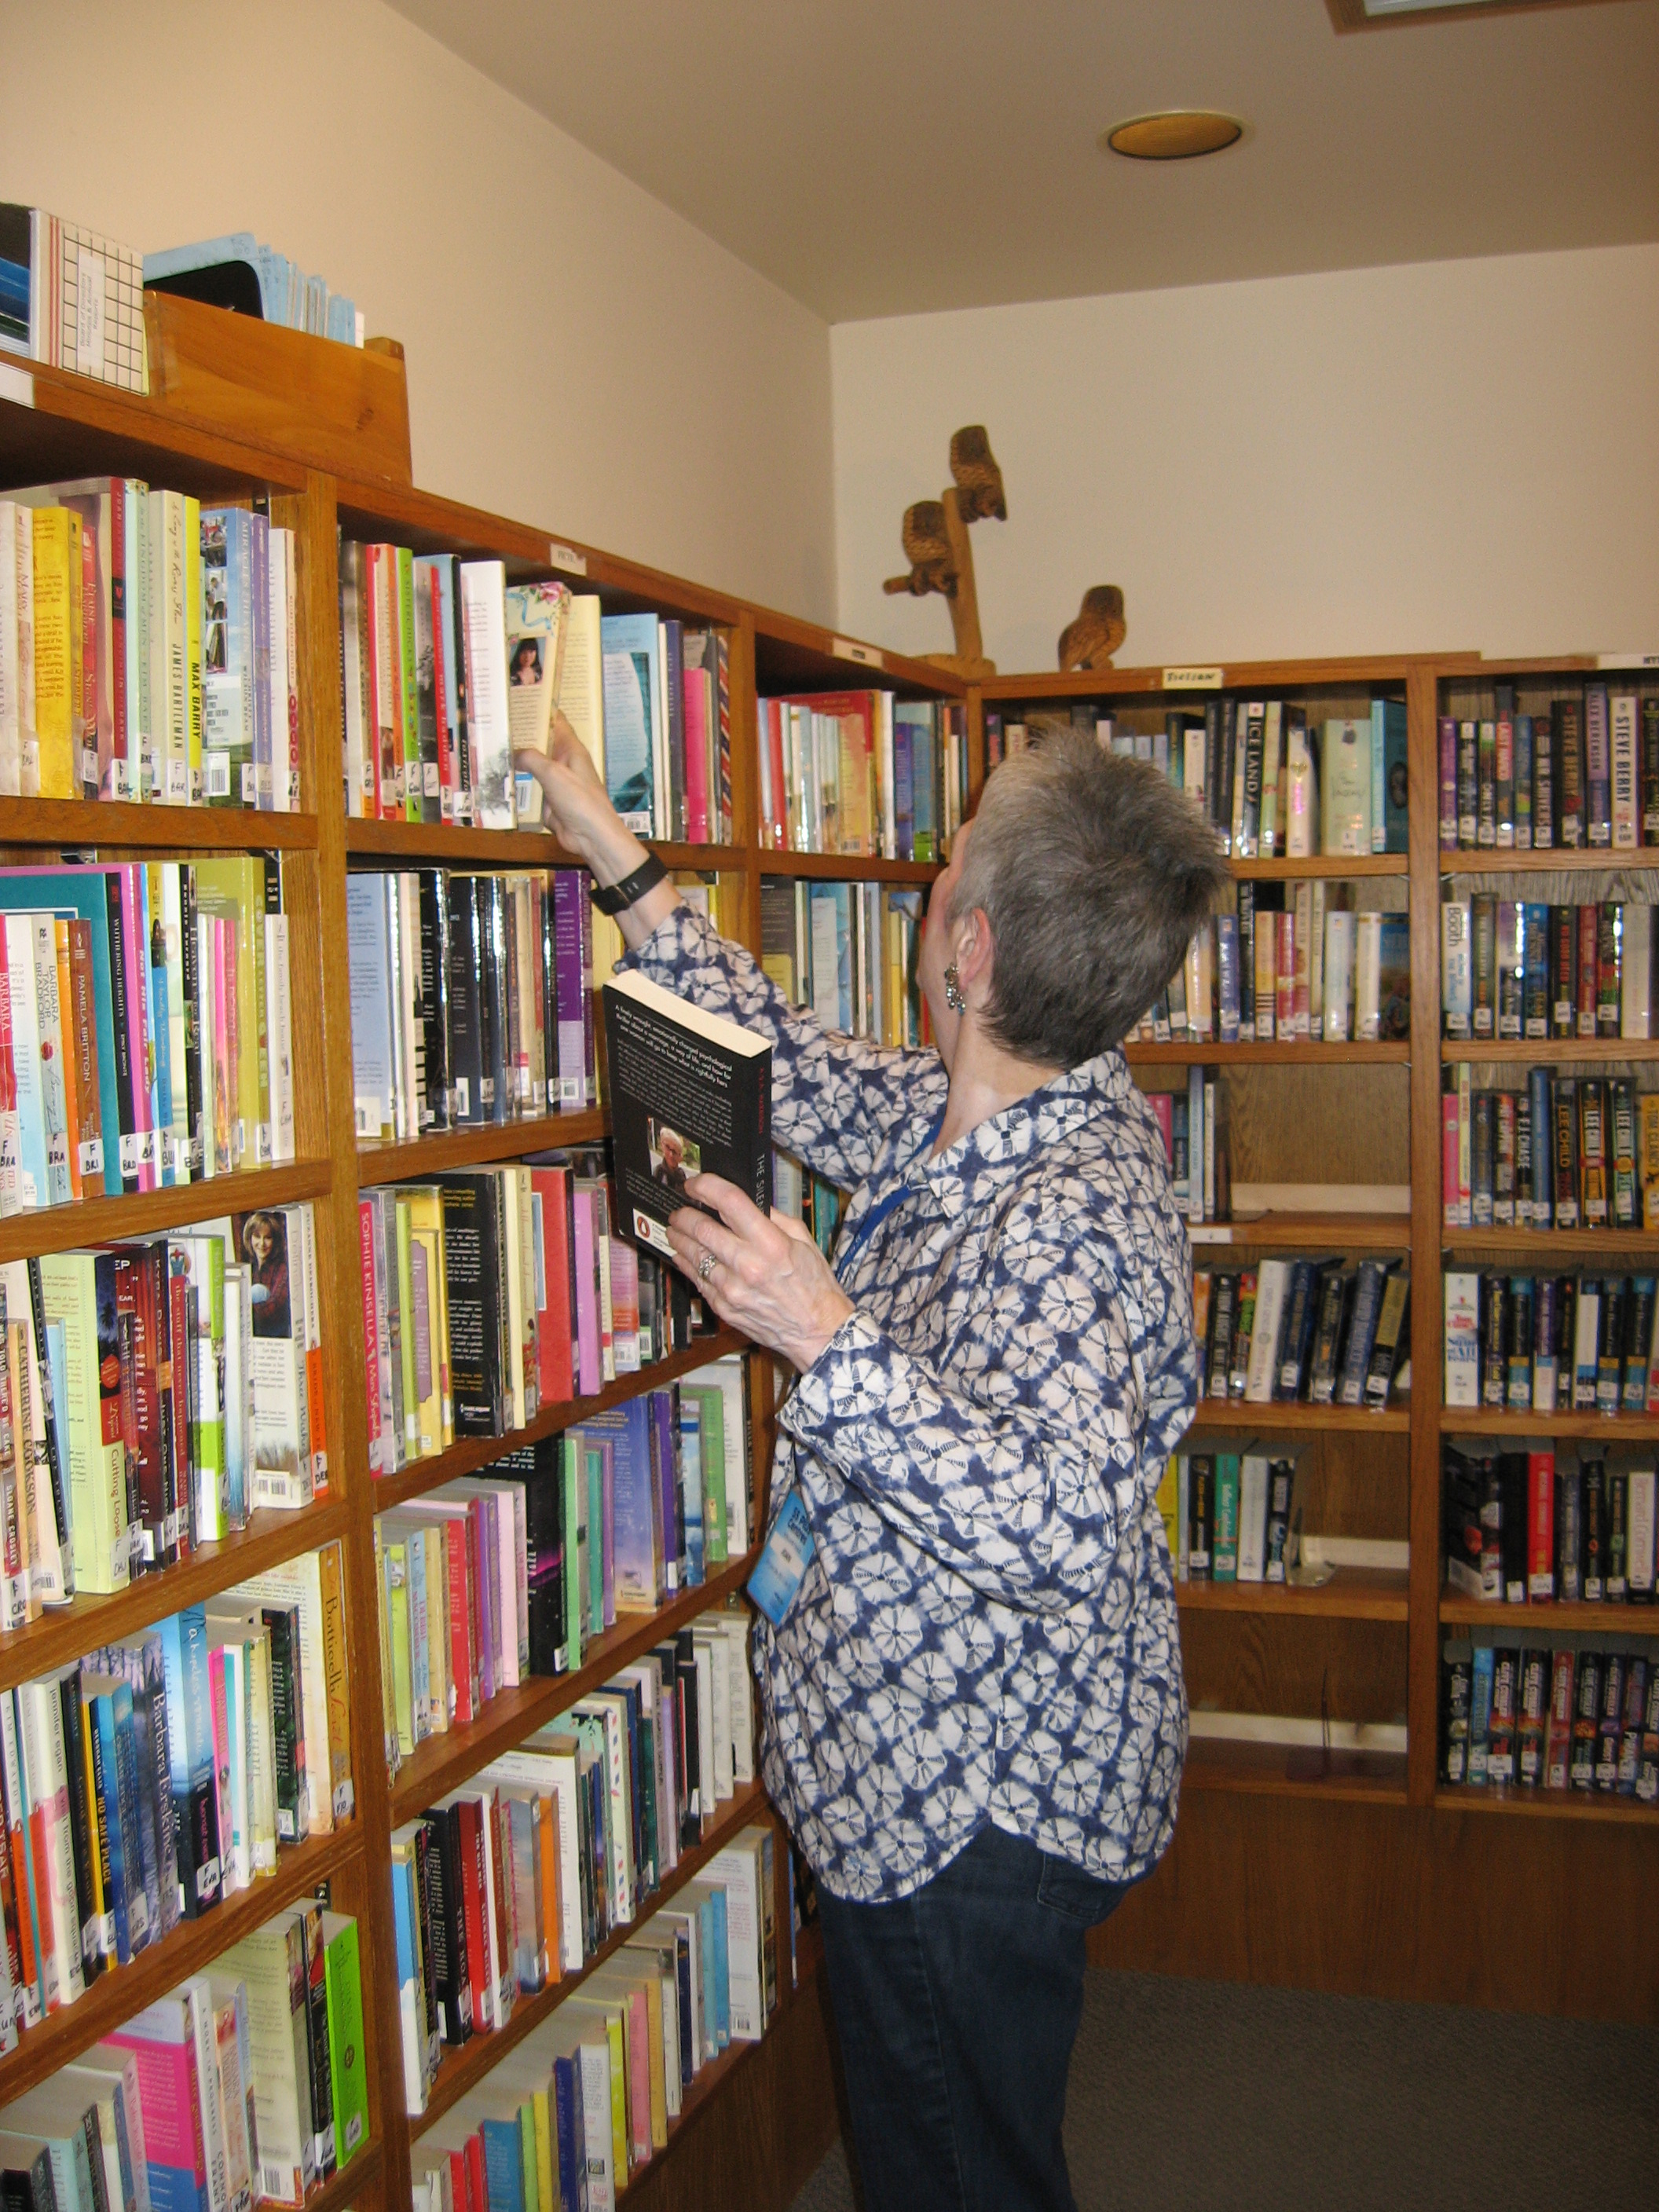 A volunteer placing a book on a shelf at the 55 Plus Centre Library.